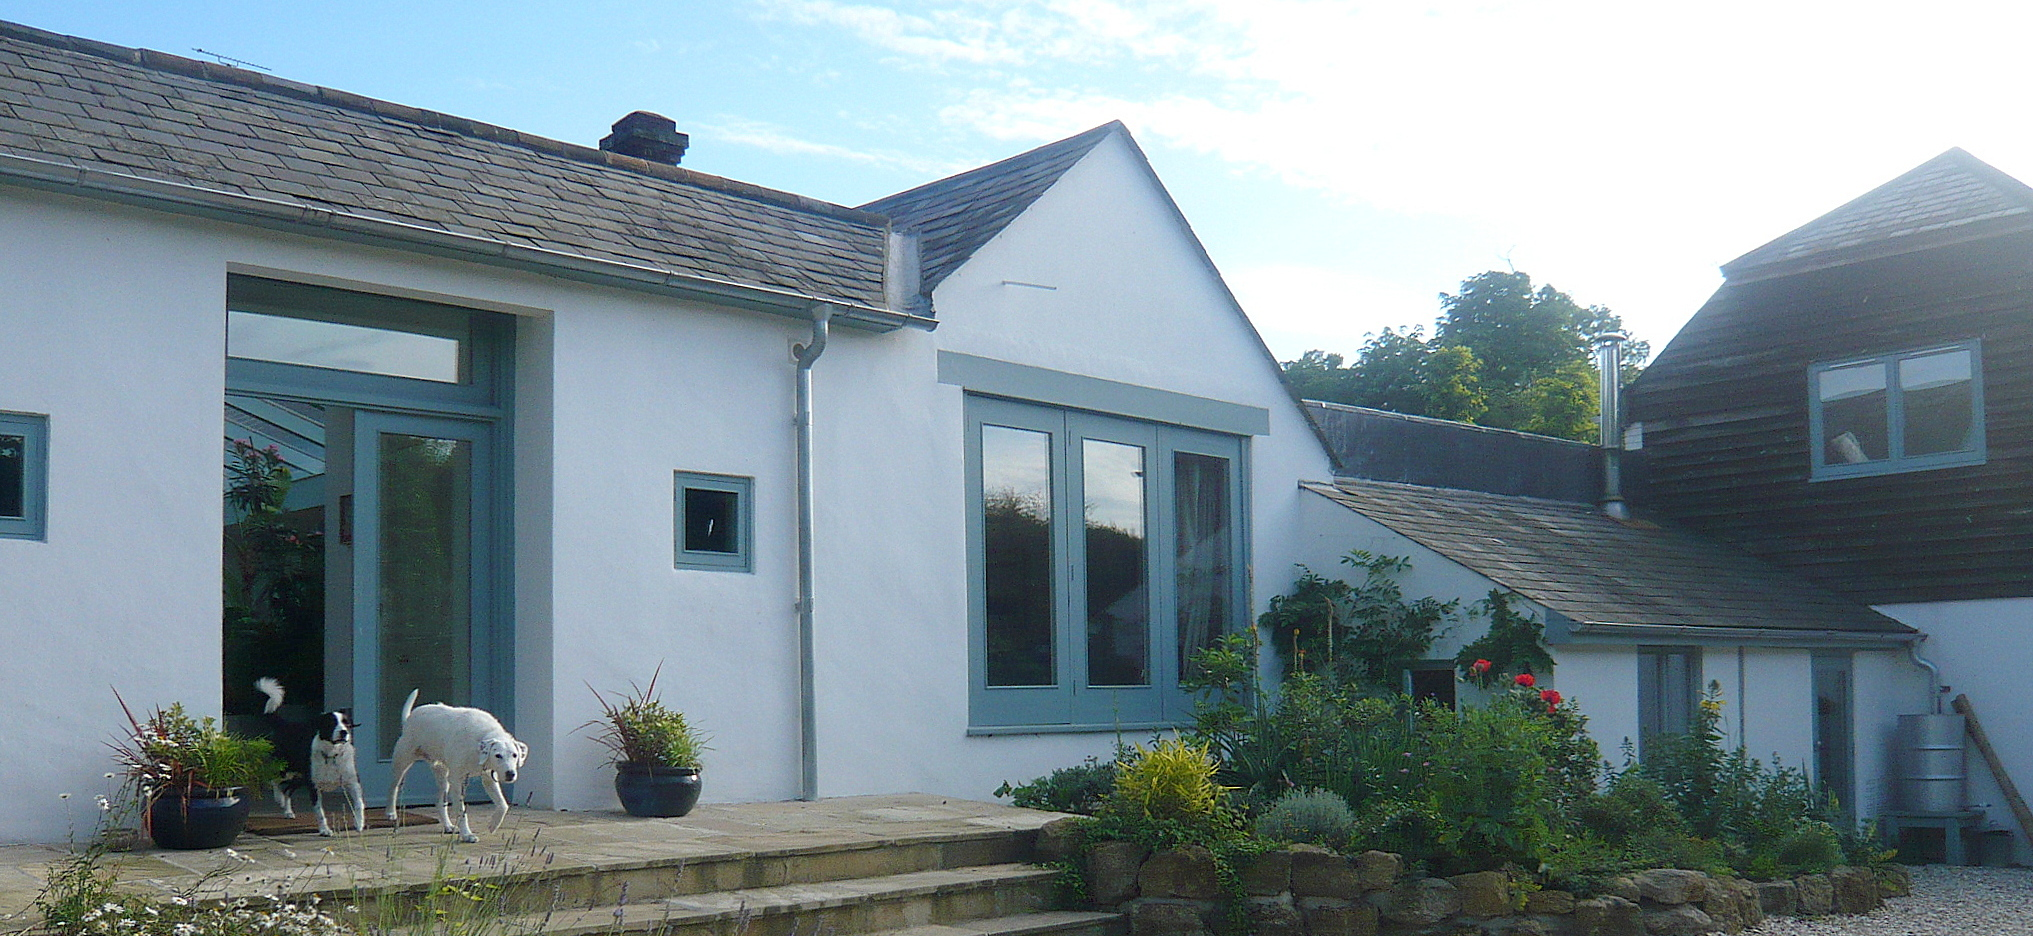 House Remodelling, Twineham, West Sussex